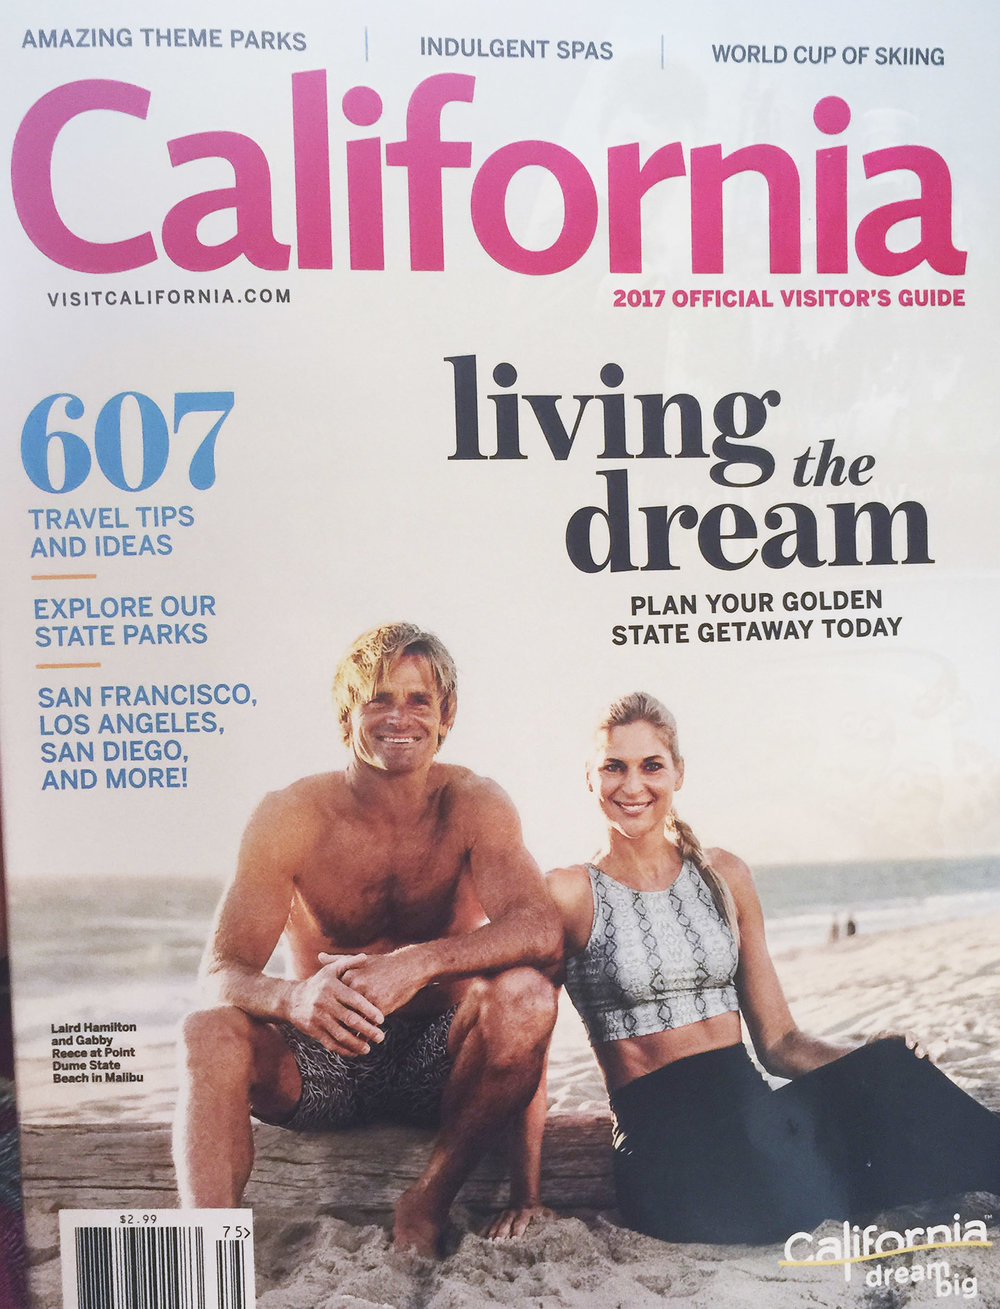 As seen in Visit California Magazine